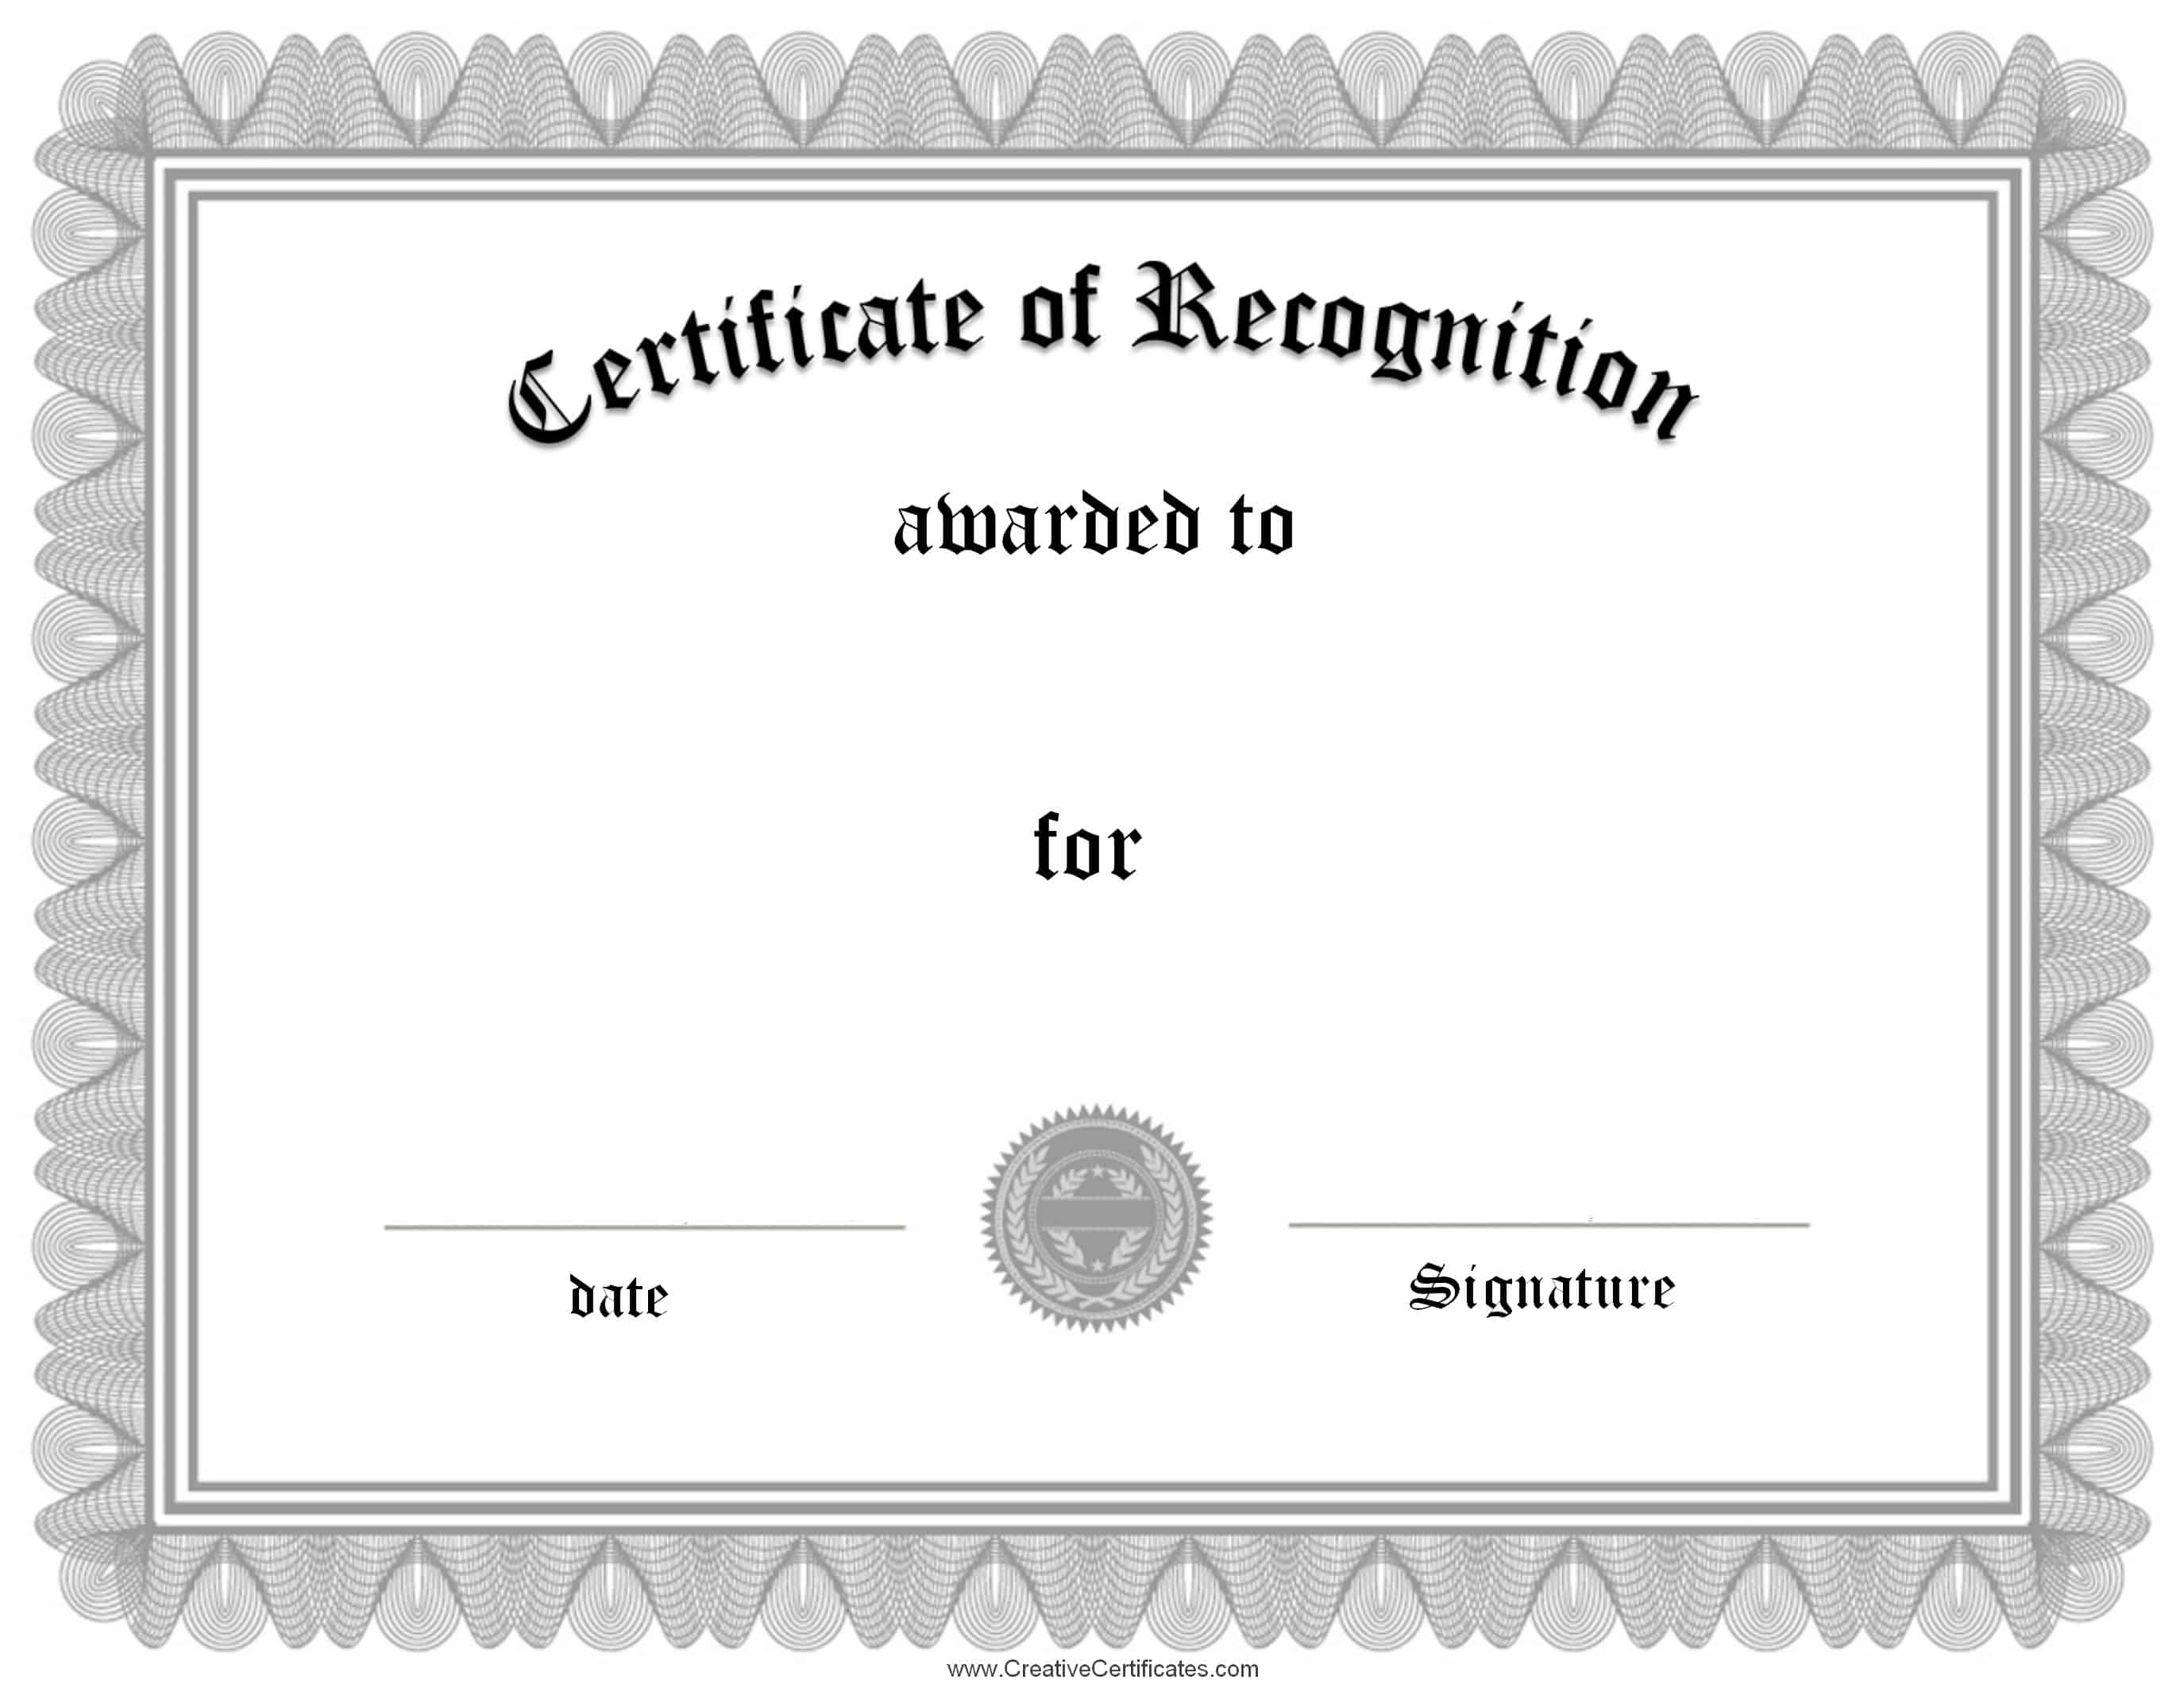 Free certificate of recognition template – Formal Certificate Template